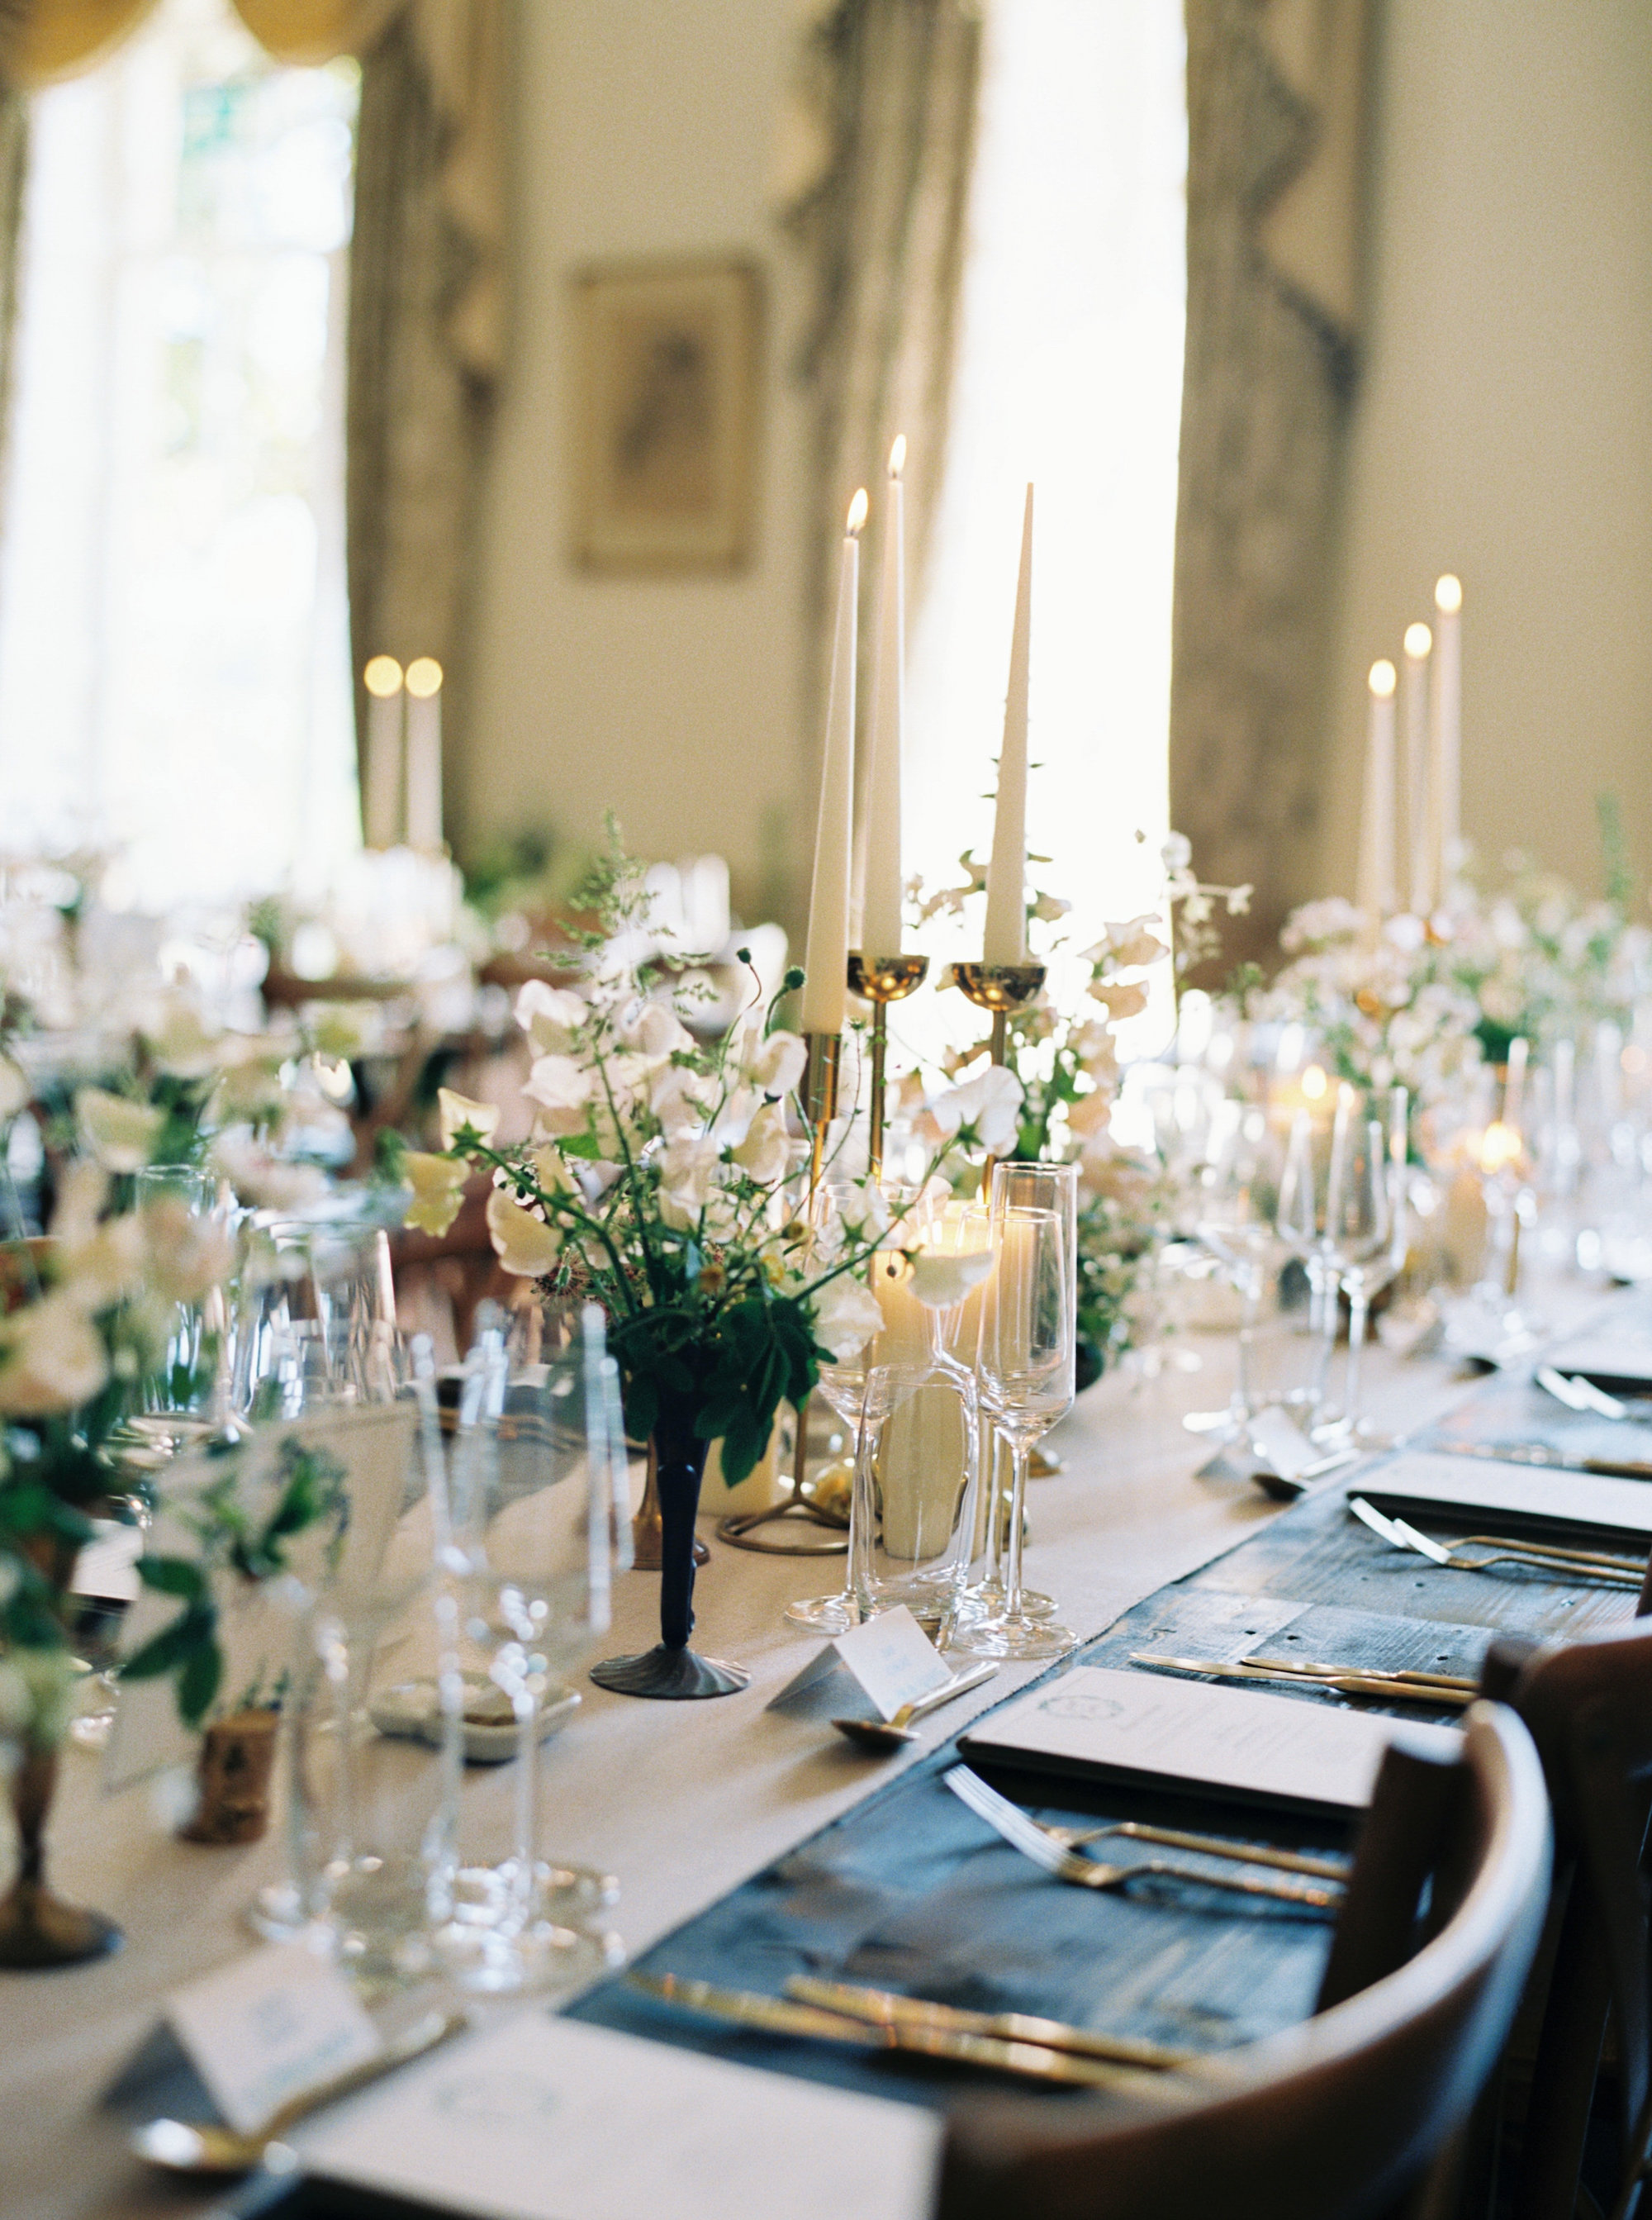 Luxury Wedding Planner UK | Jennifer & Timothy's English Country Manor Wedding | Soft Pink Pale Blue White and Silver Toned Green Neutral Tones American Bride North Cadbury Court | Nicole Colwell Photography 1219.jpg